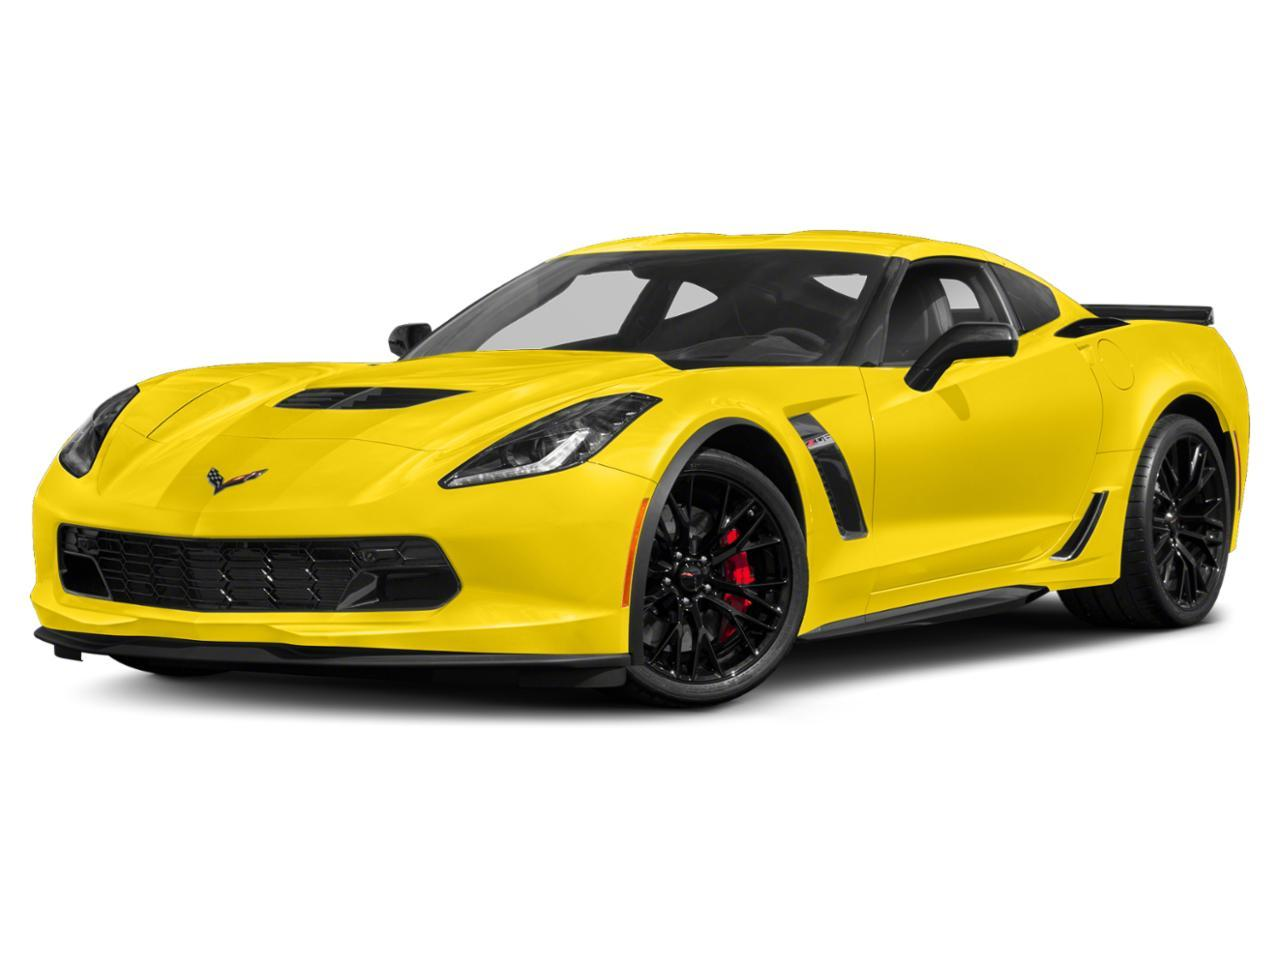 2019 Chevrolet Corvette Vehicle Photo in Westlake, OH 44145